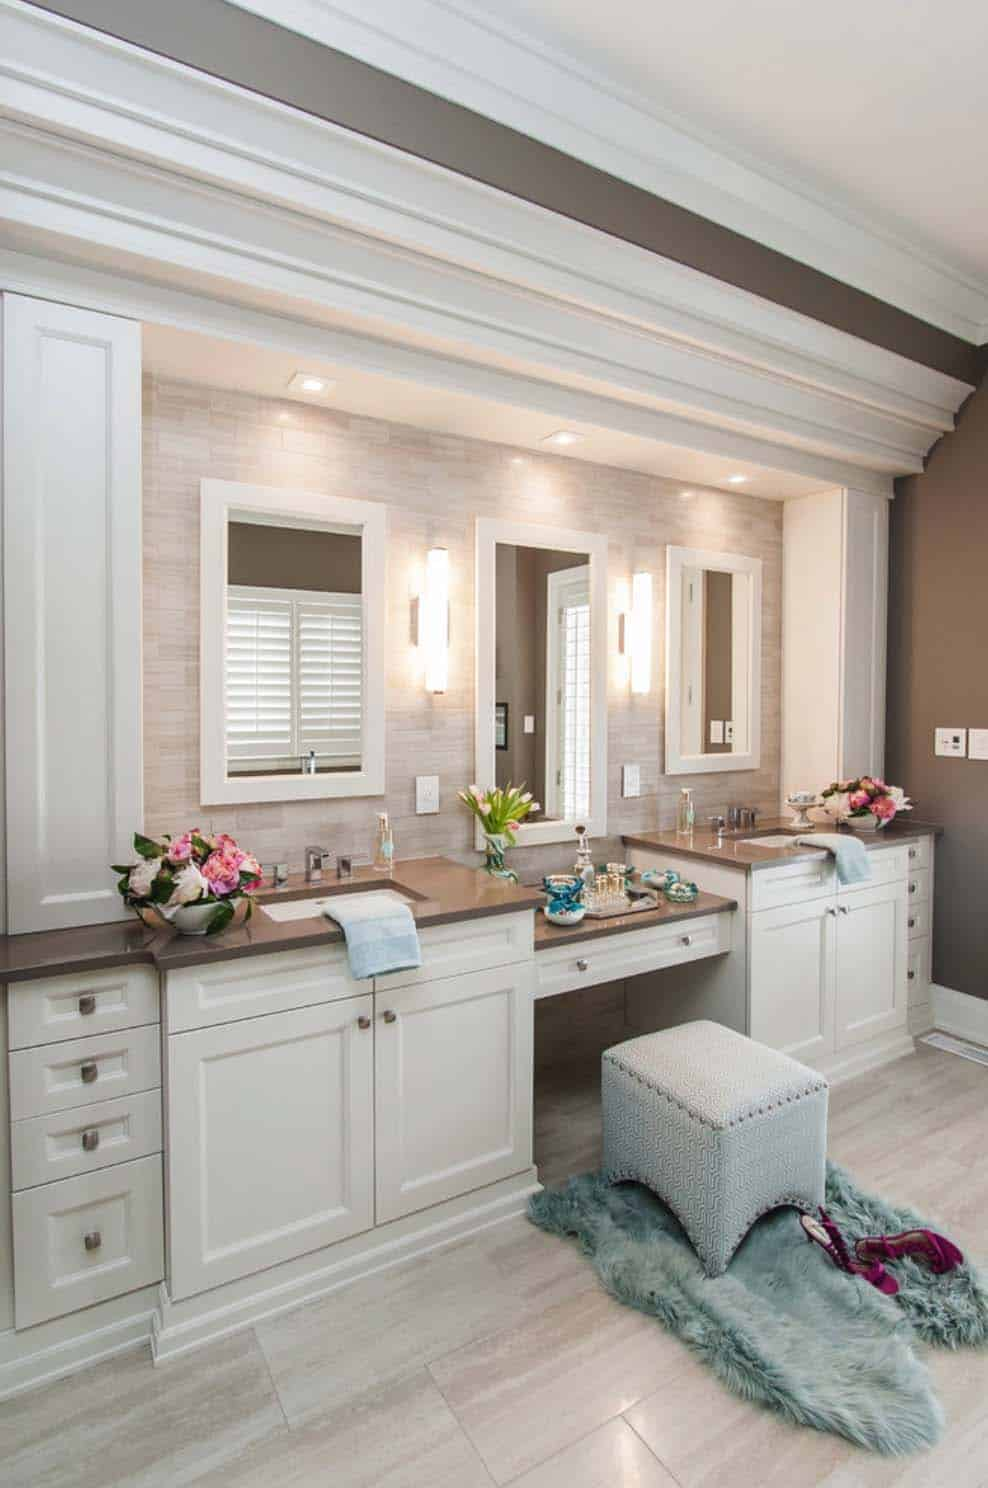 Traditional Bathroom Design Ideas Simple 53 Most Fabulous Traditional Style Bathroom Designs Ever Decorating Inspiration